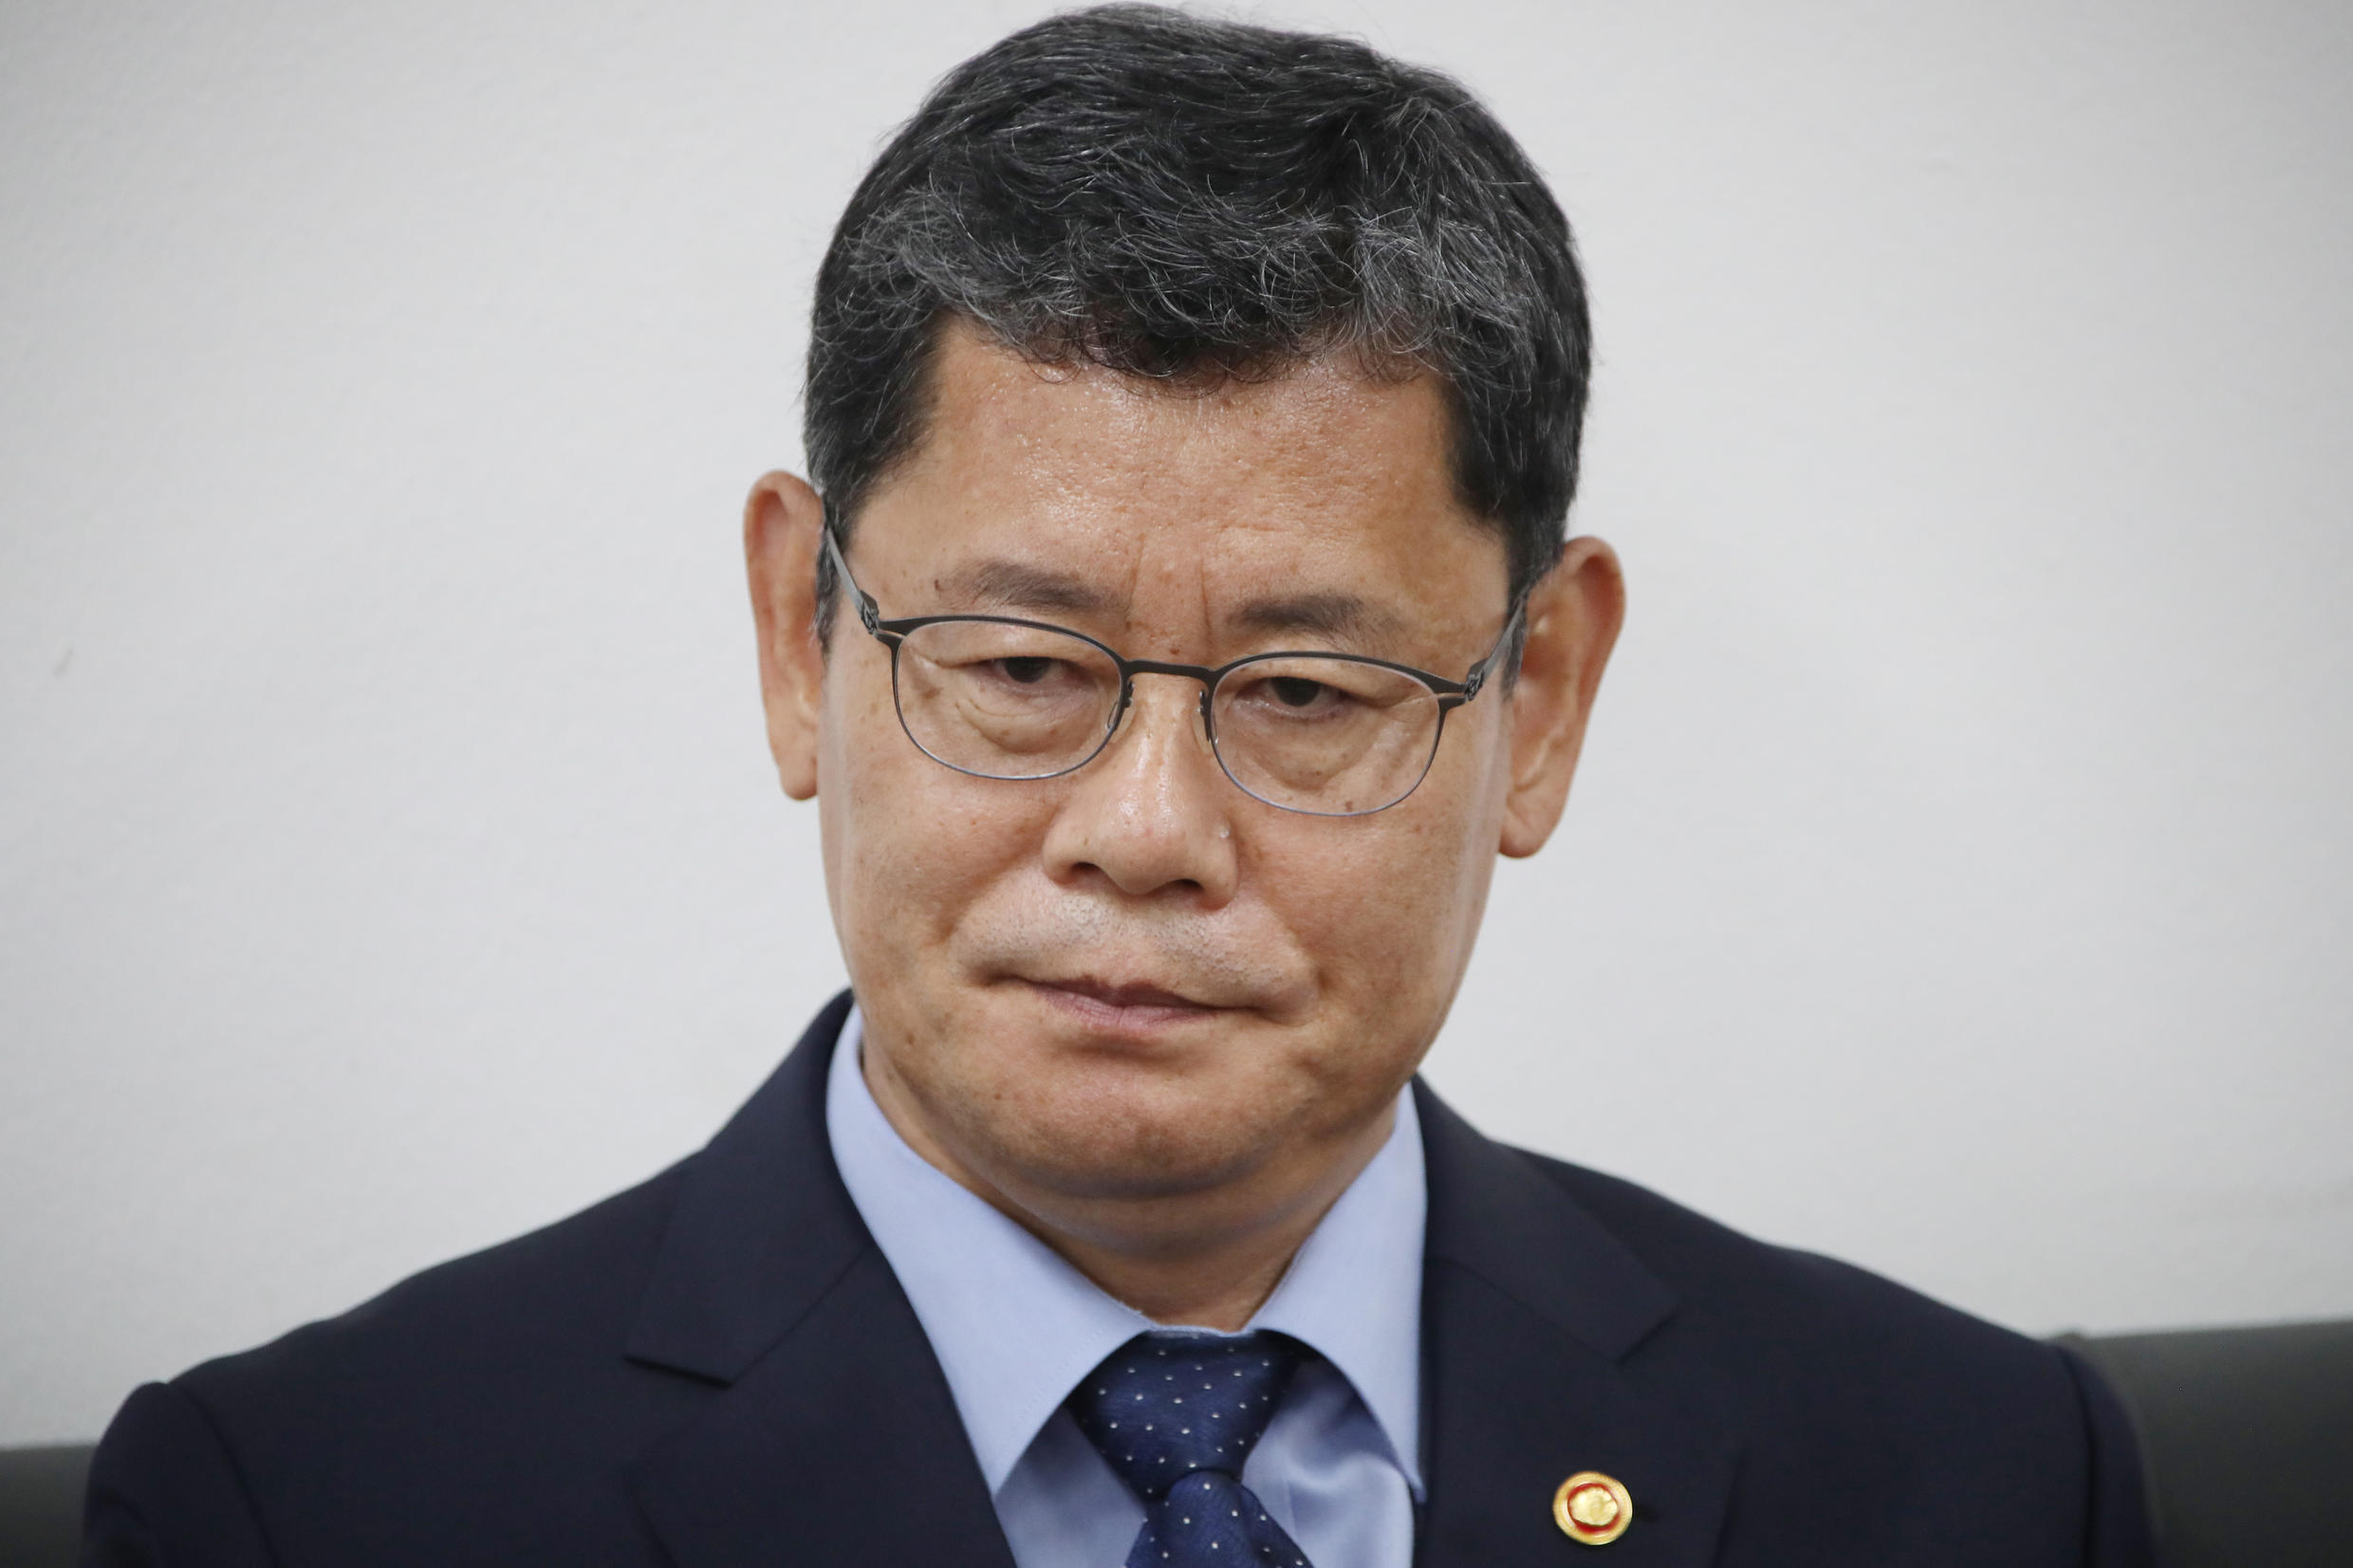 South Korean Unification Minister Kim Yeon-chul meets with reporters at the government complex in Seoul on June 17, 2020, to announce his offer to resign over the worsening of inter-Korean relations.